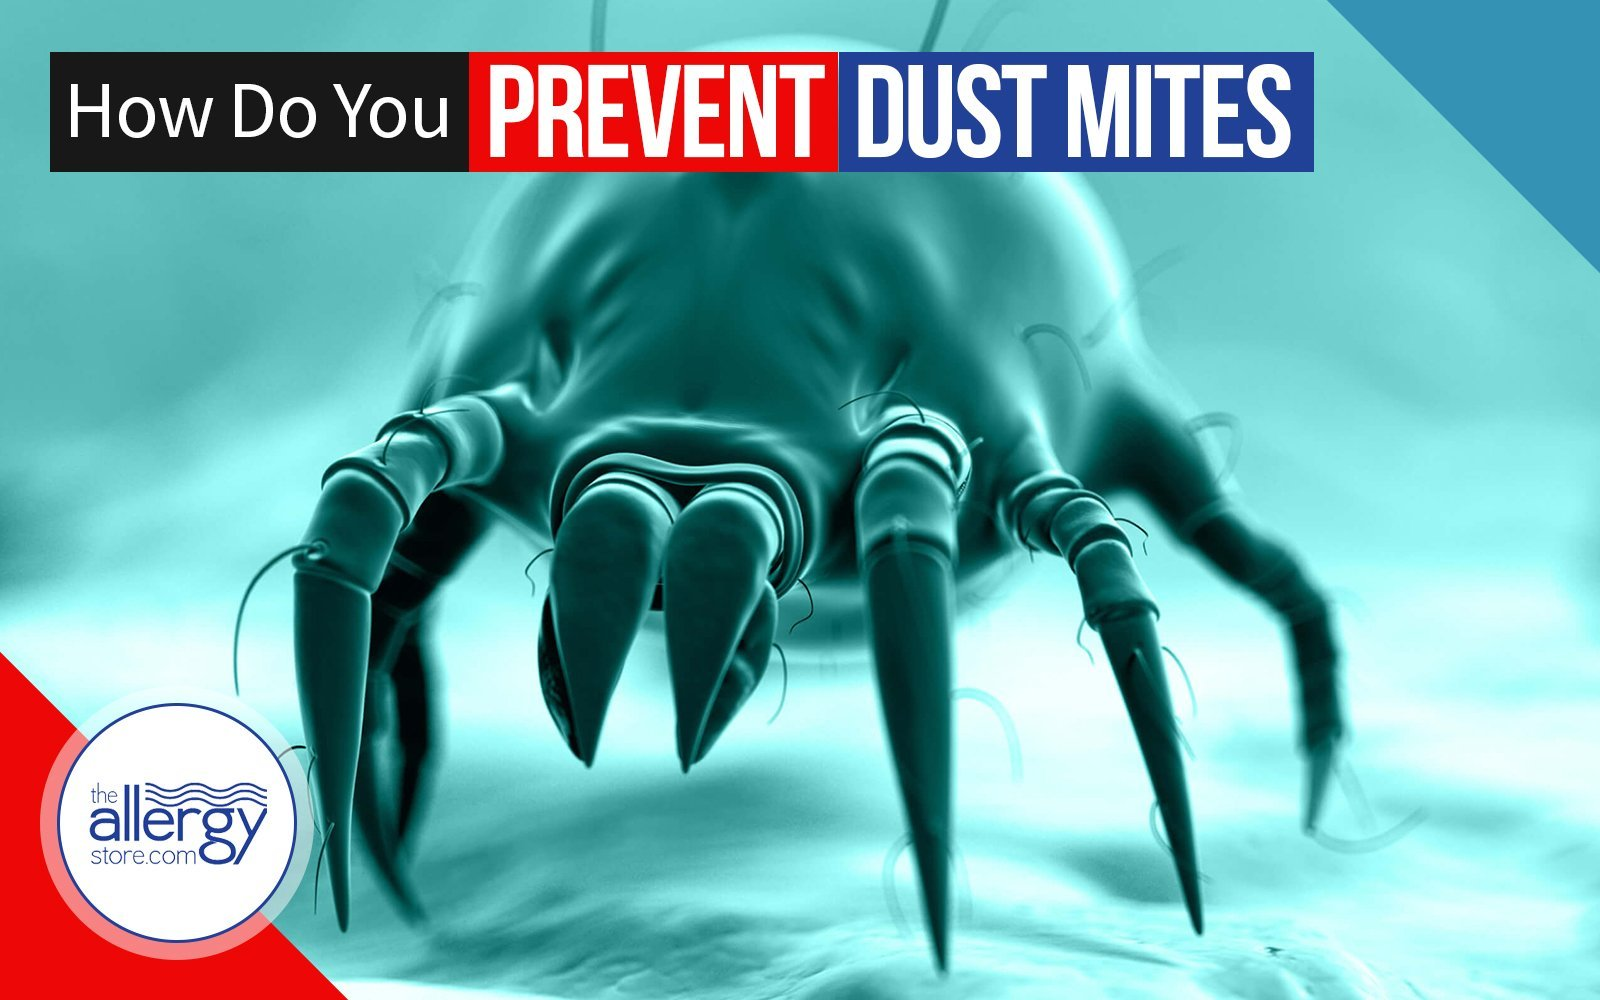 How Do You Prevent Dust Mites